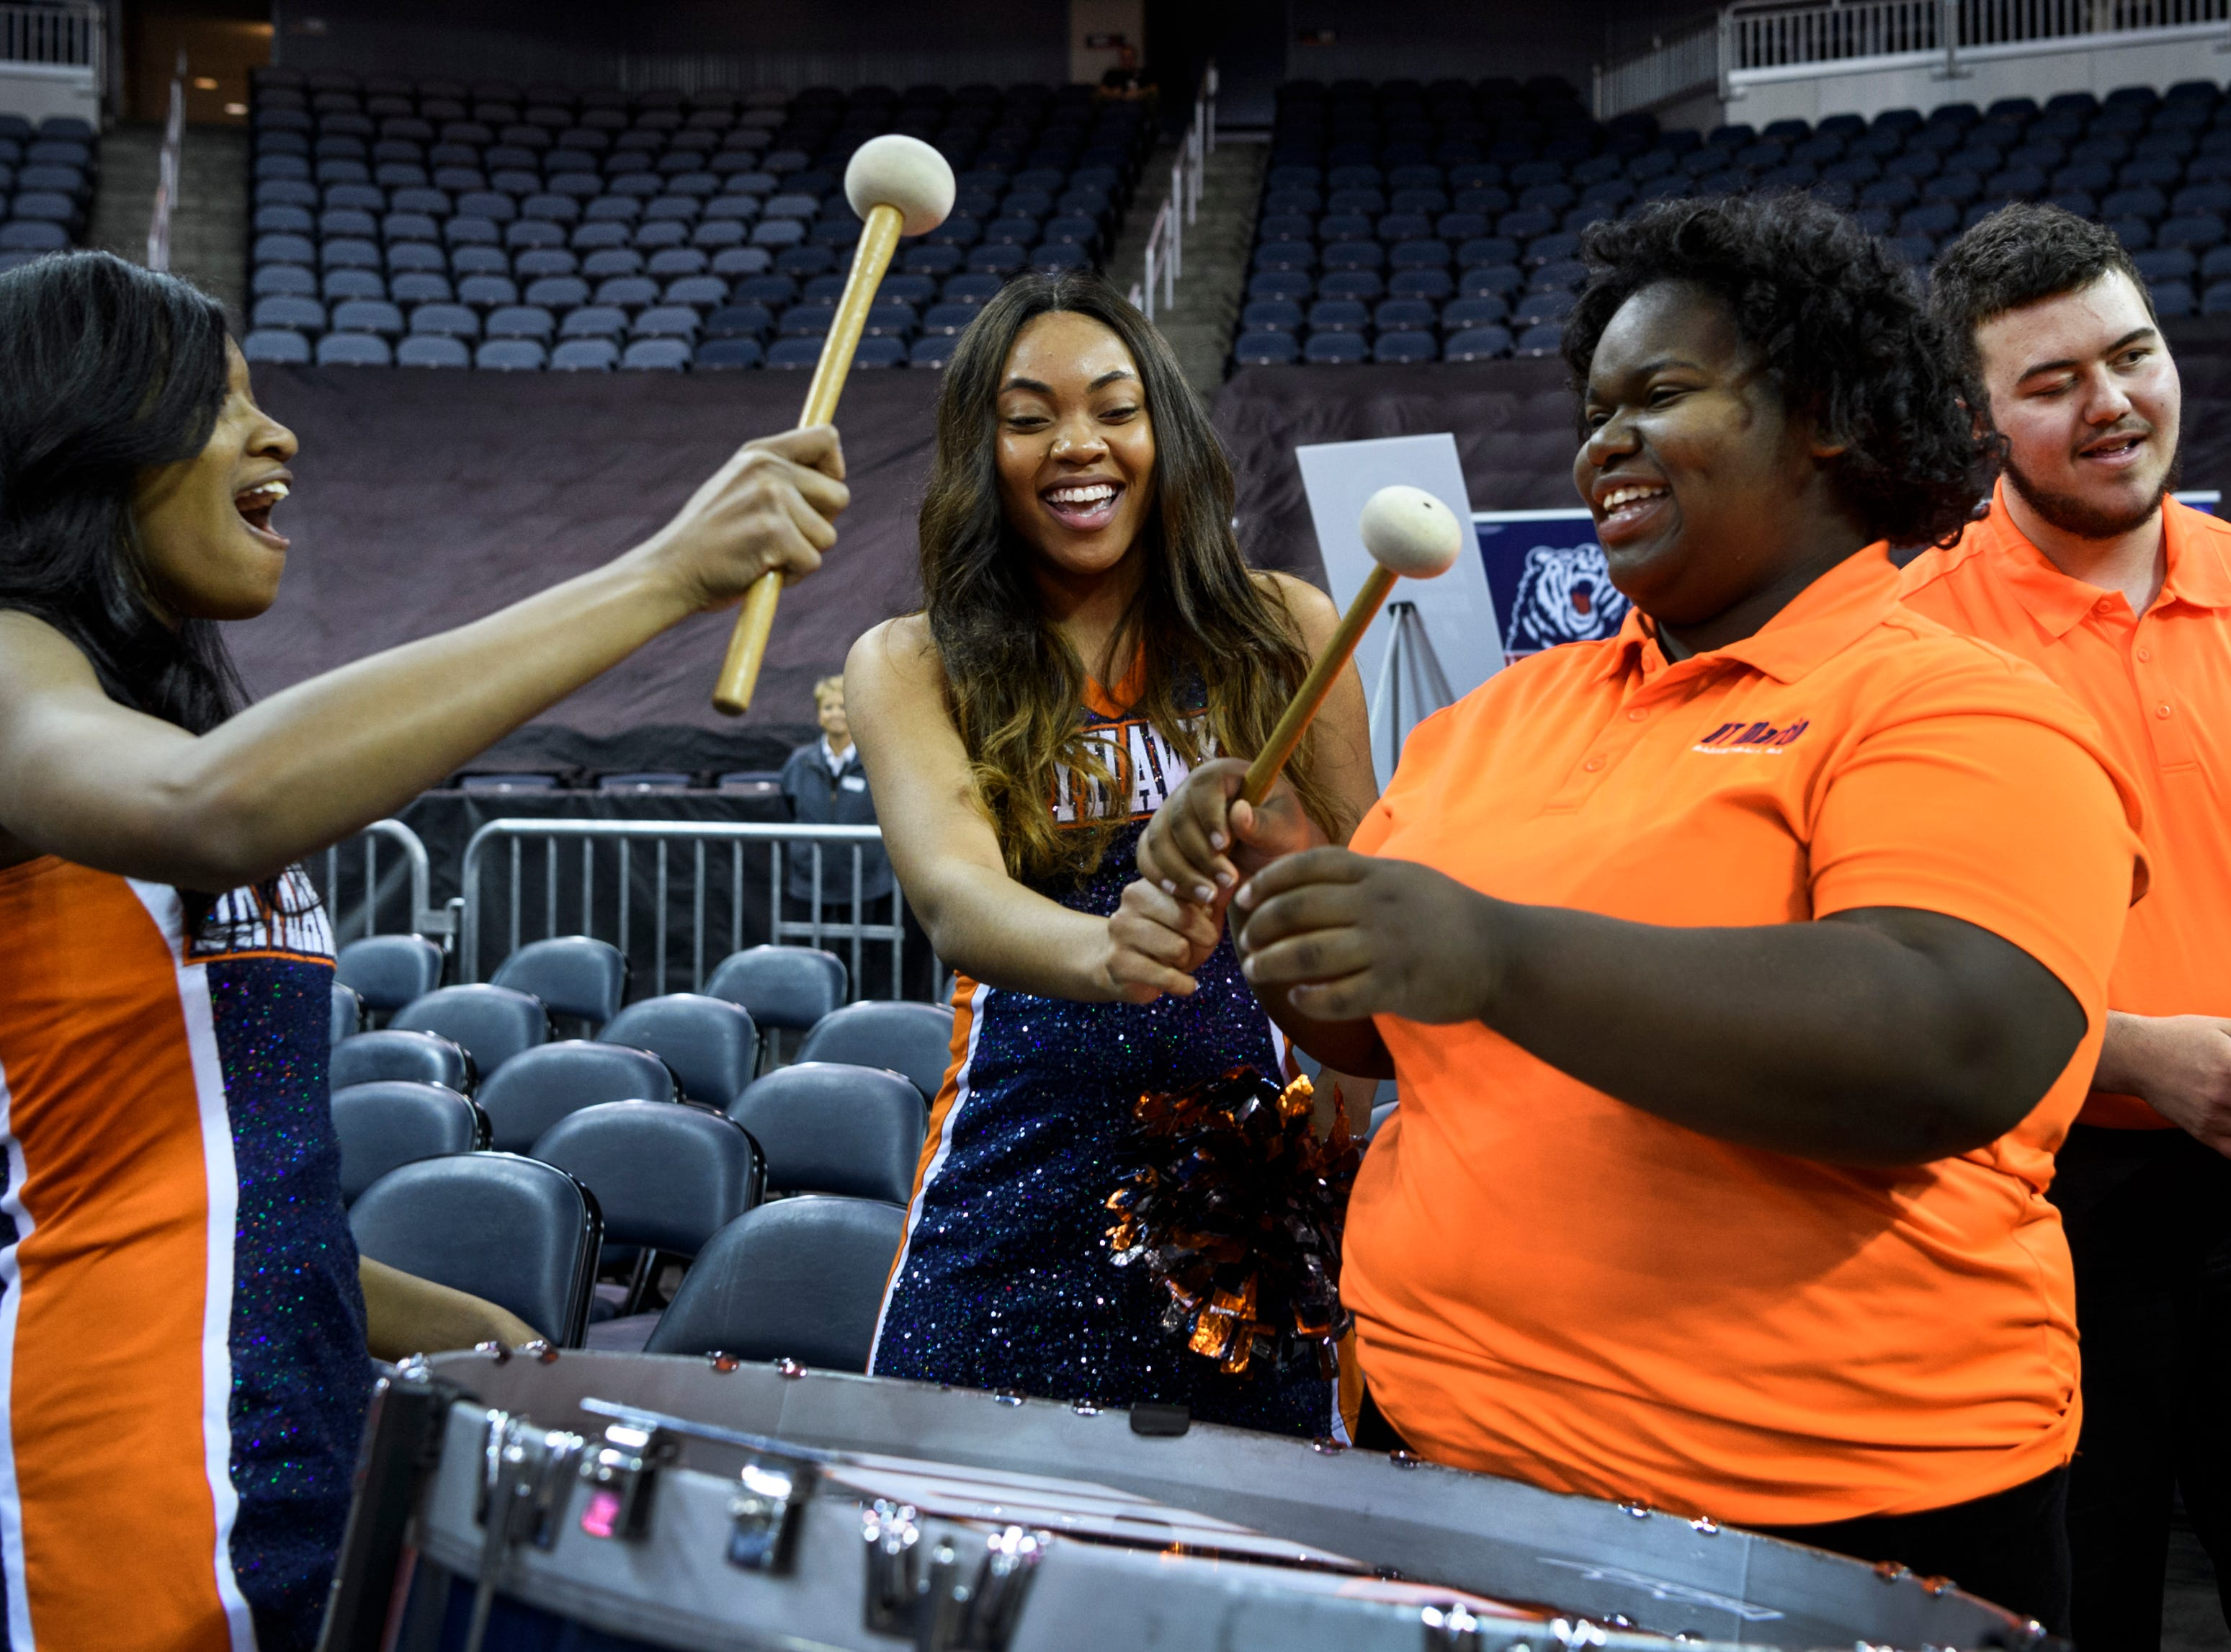 Dancers Jamesha Shelton and Lindsay Williams beat on a drum with Brianna Hampton, a member of the University of Tennessee Martin pep band, during the women's game against Murray State at the Ohio Valley Conference tournament in Evansville's Ford Center, Thursday, March 7, 2019.